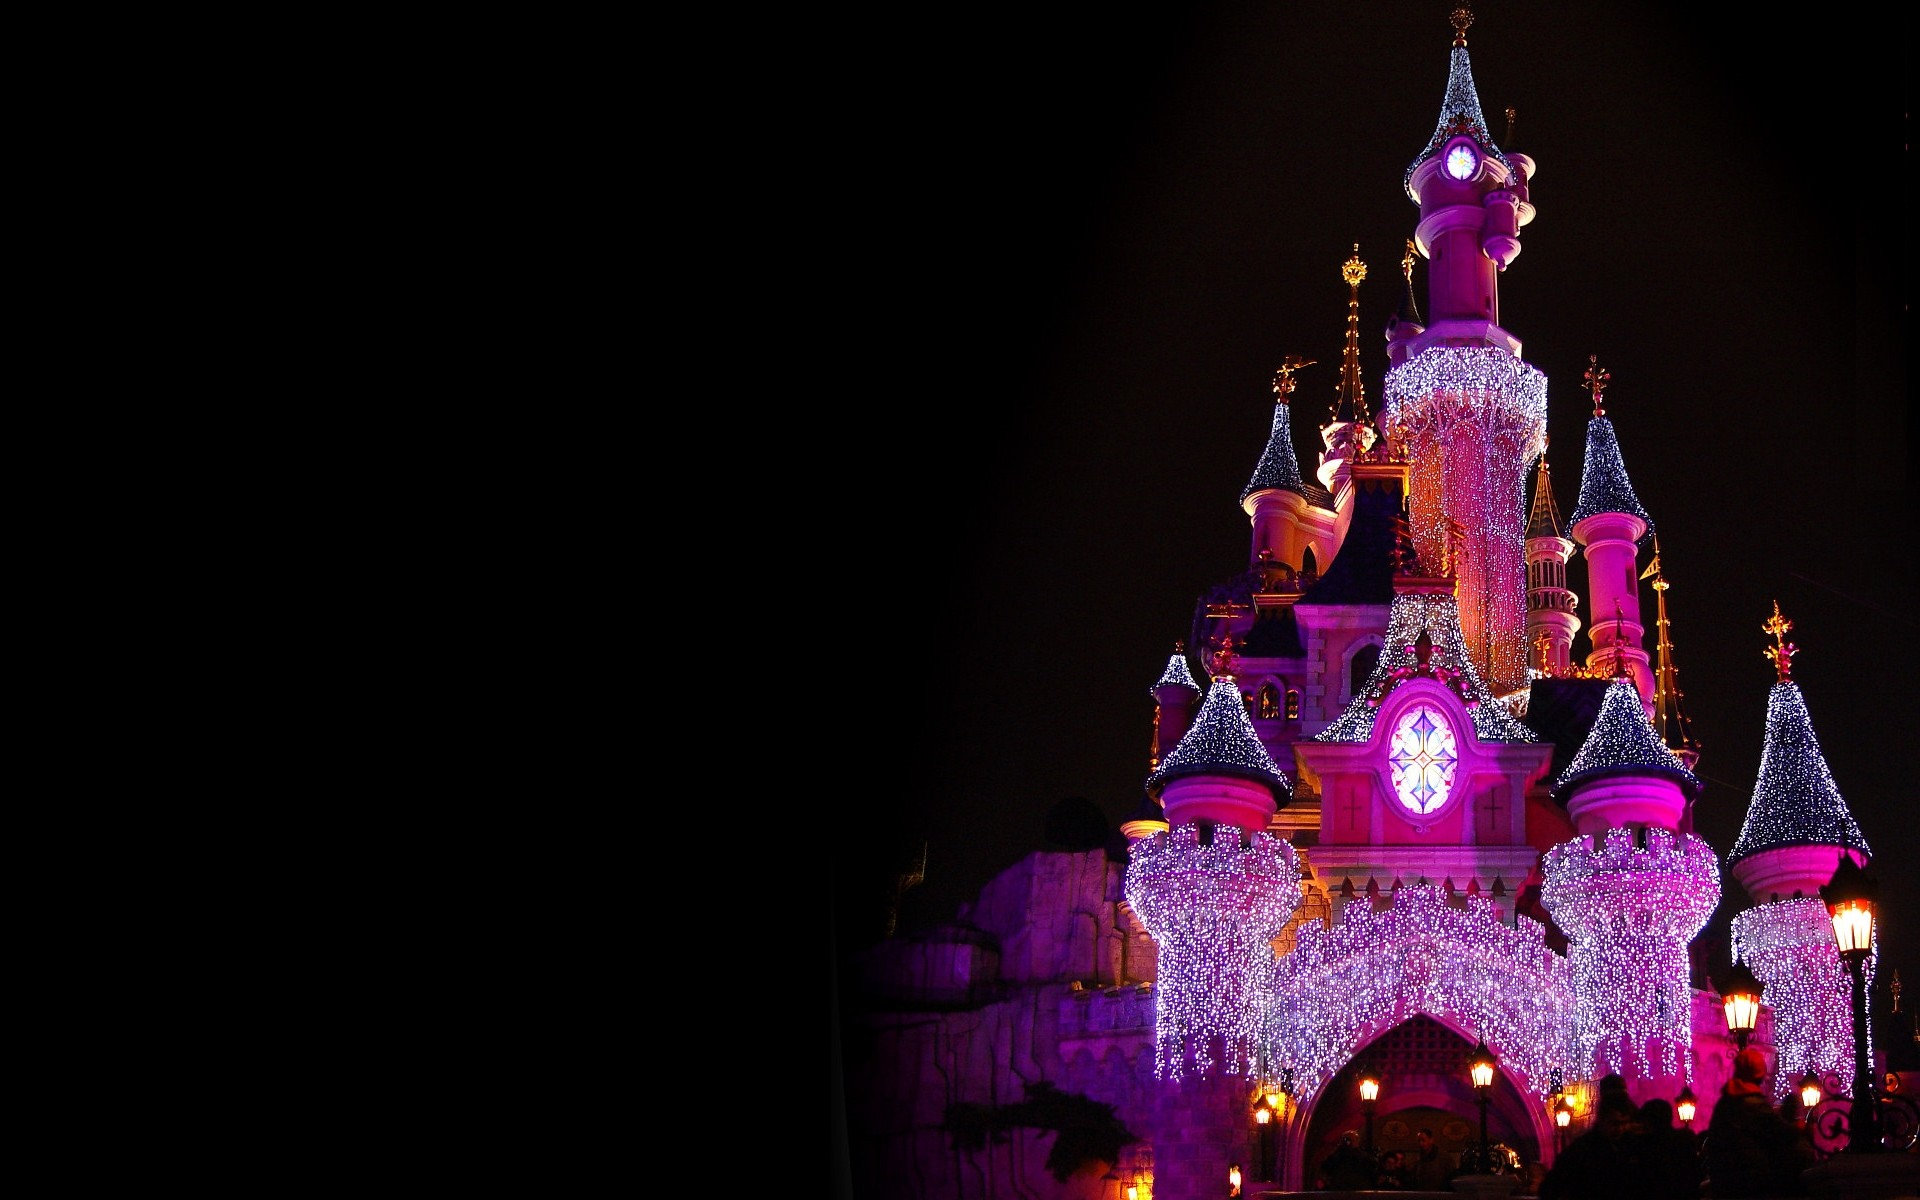 1920x1200 download free disney background 1920x1200 for android 50